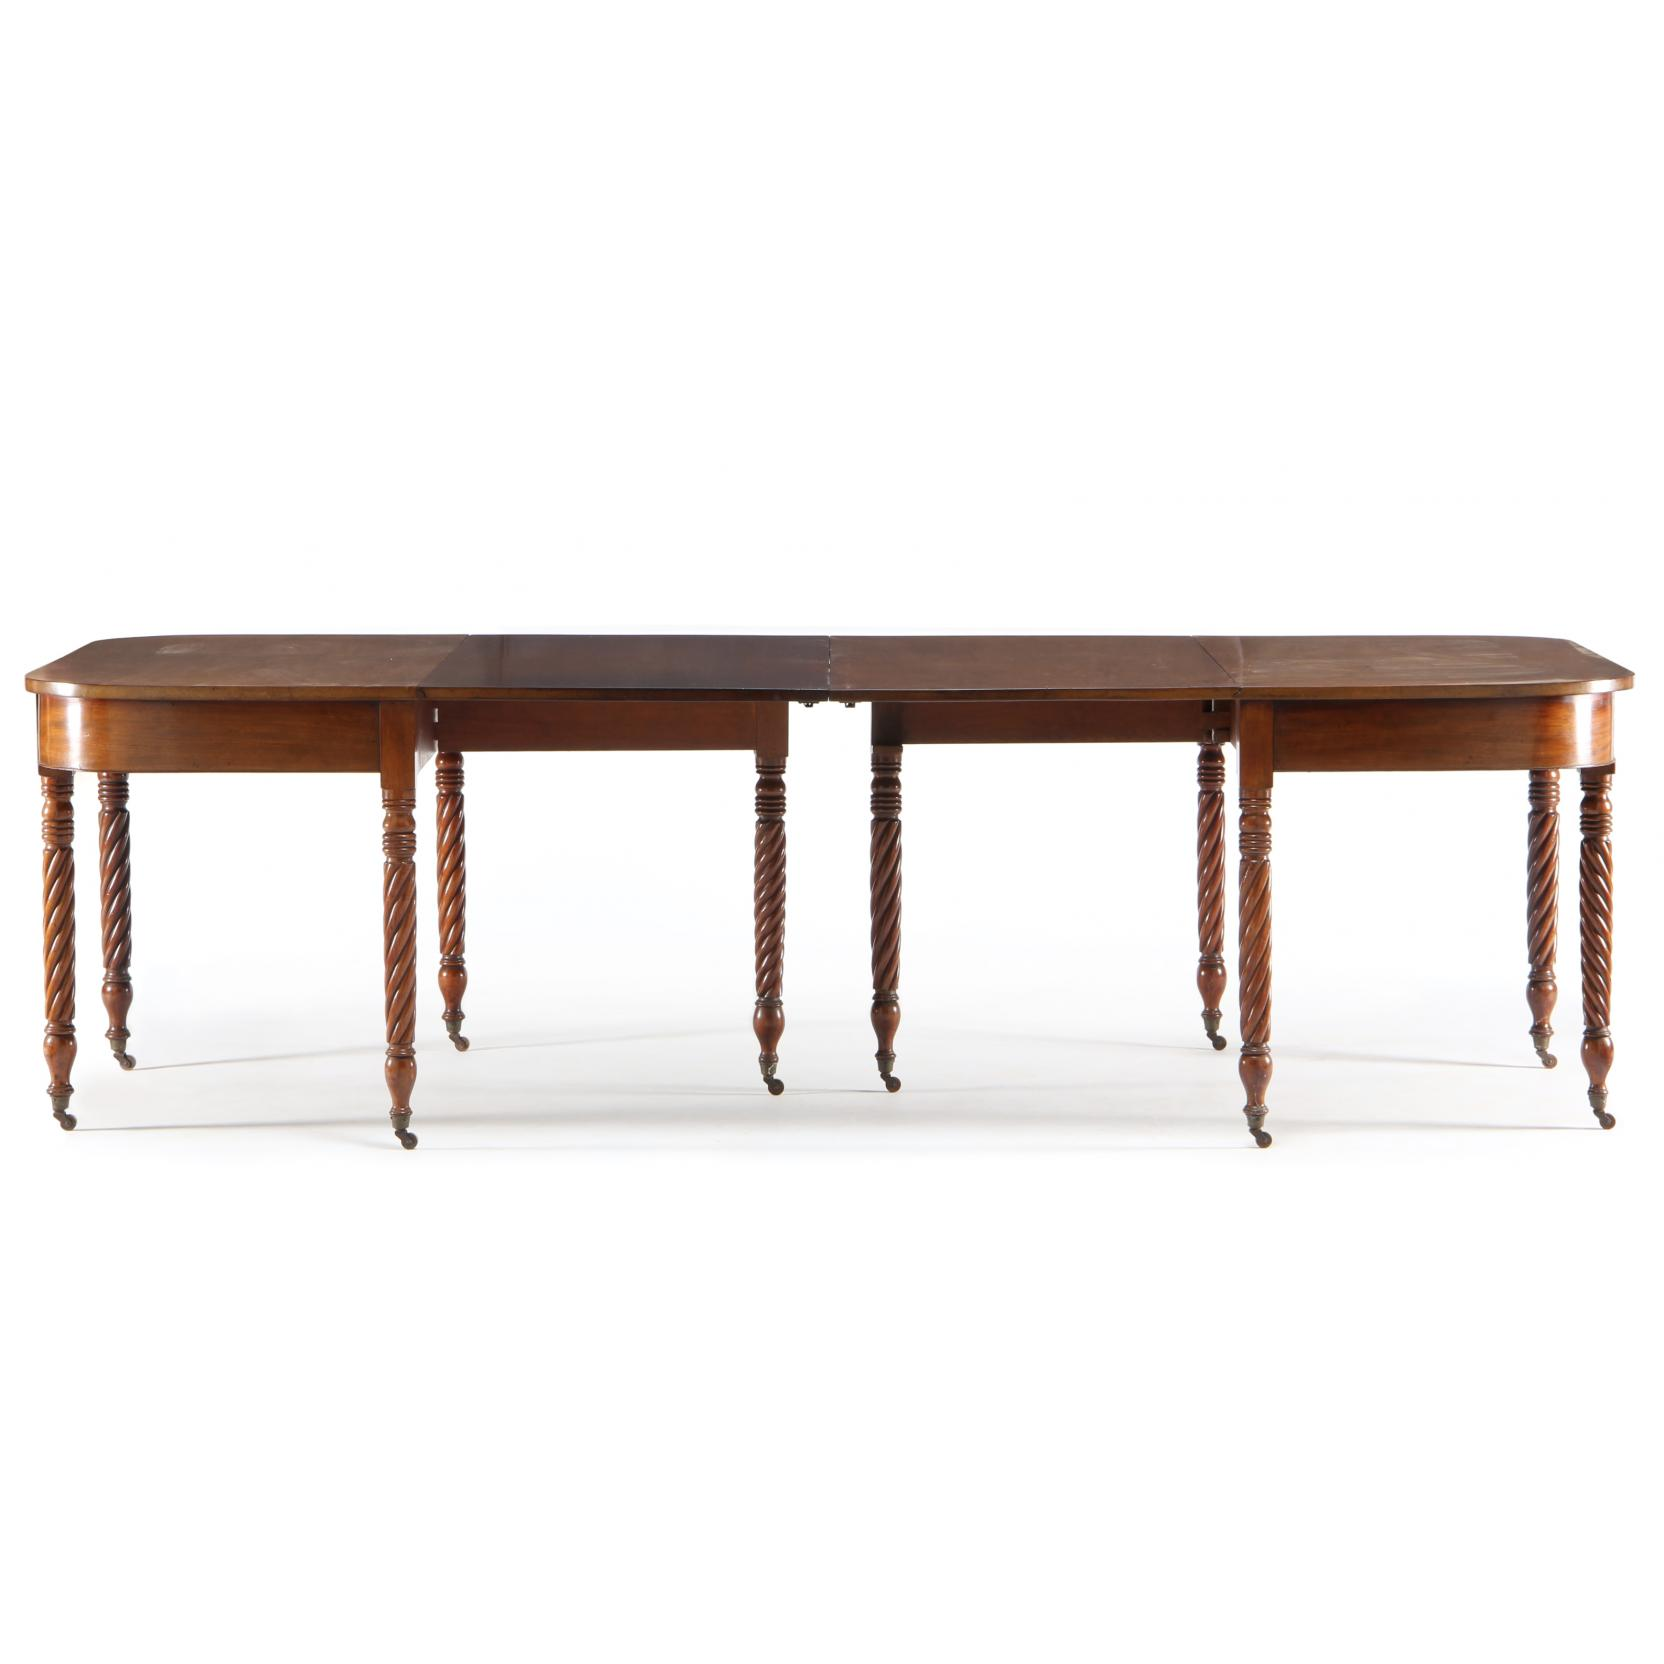 Virginia Two Part Banquet Table circa 1825,